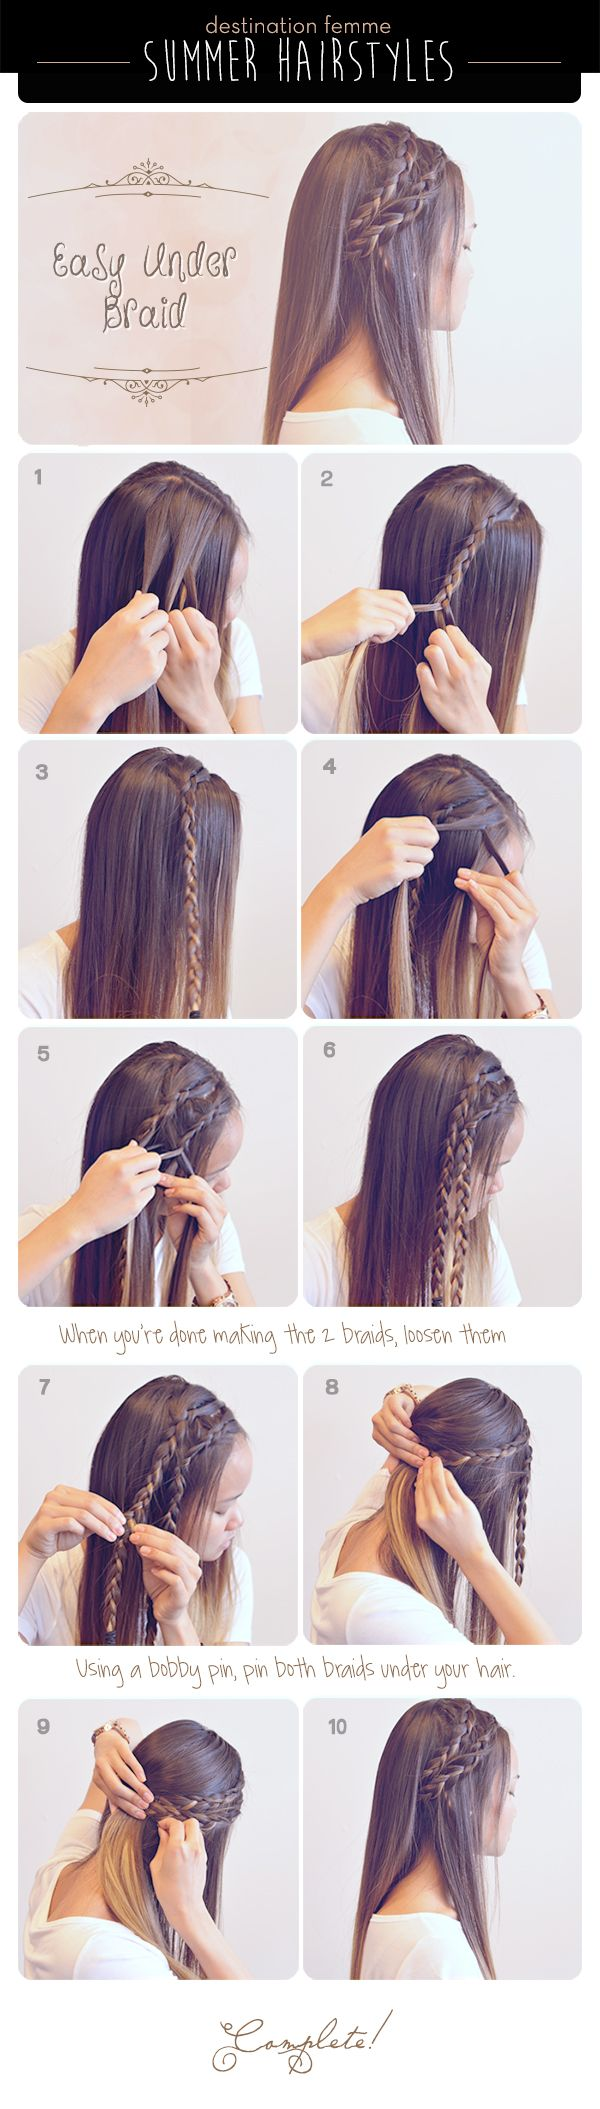 15 Easy Hairstyle Tutorials For All Occasions Styles Weekly